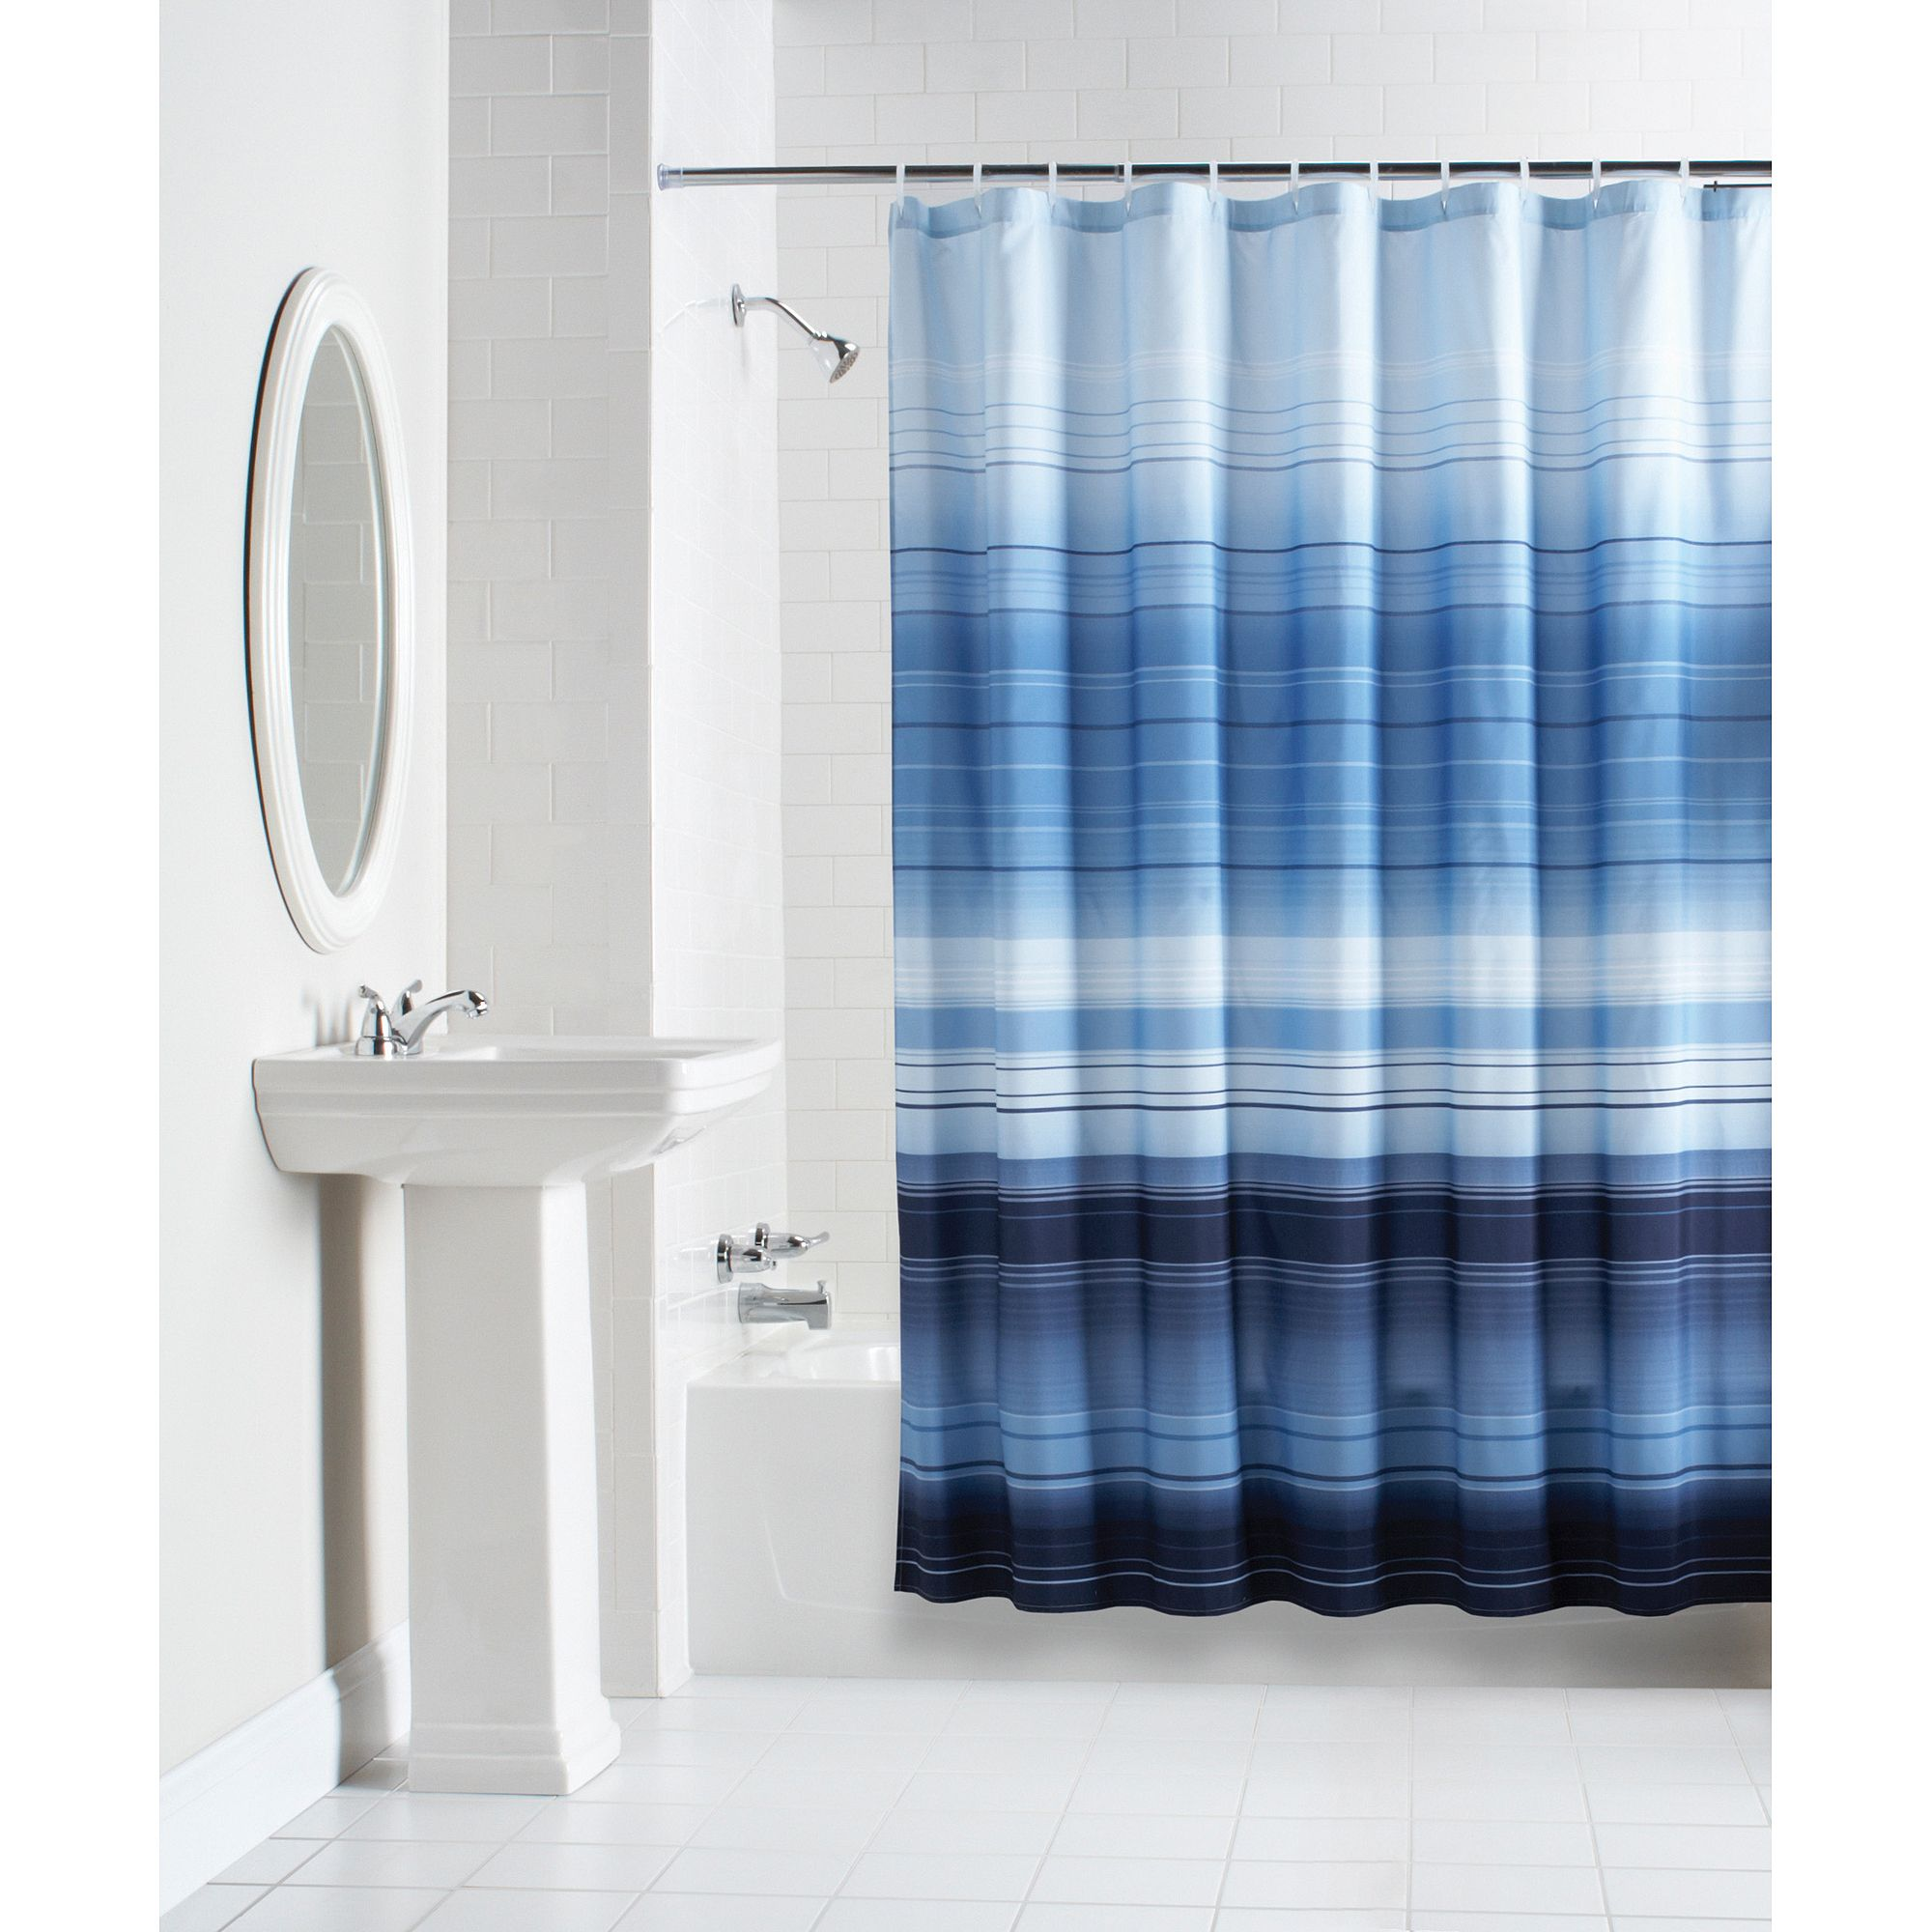 Choosing The Best Shower Curtain Check It Out Shower Curtains - Black and white striped bath rug for bathroom decorating ideas